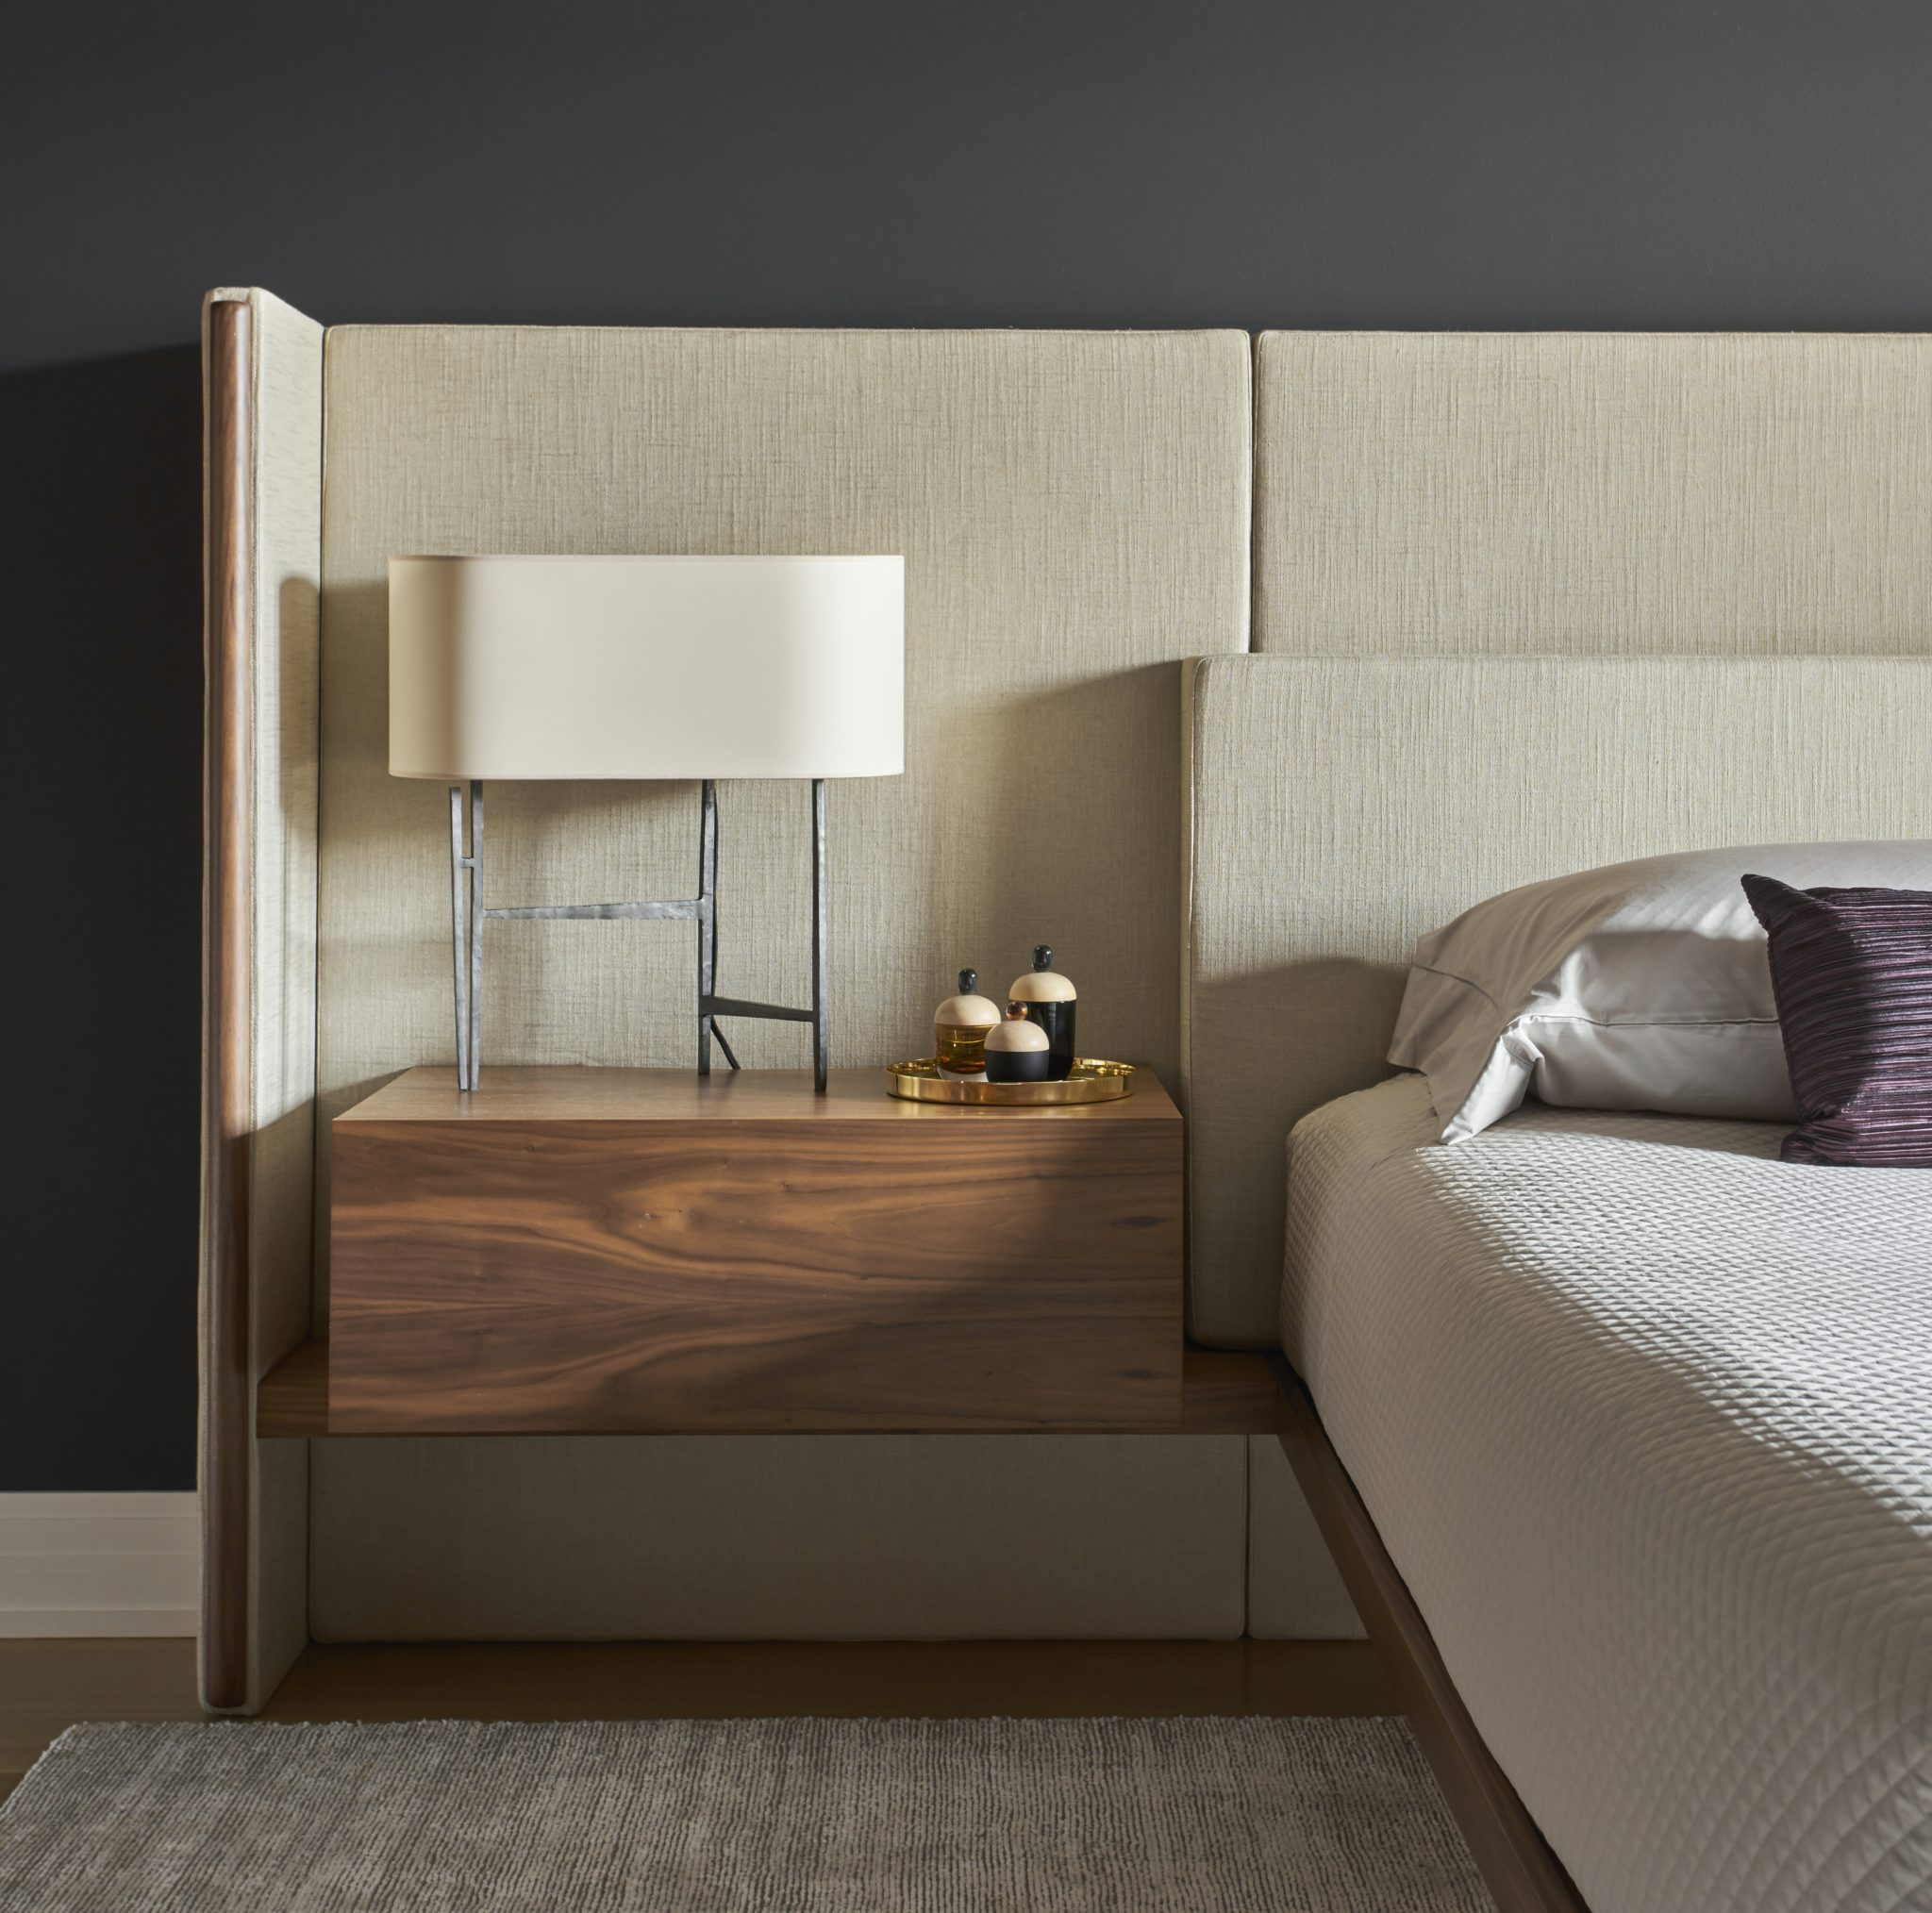 Deming Place on the Park Bedroom by STUDIO GILD